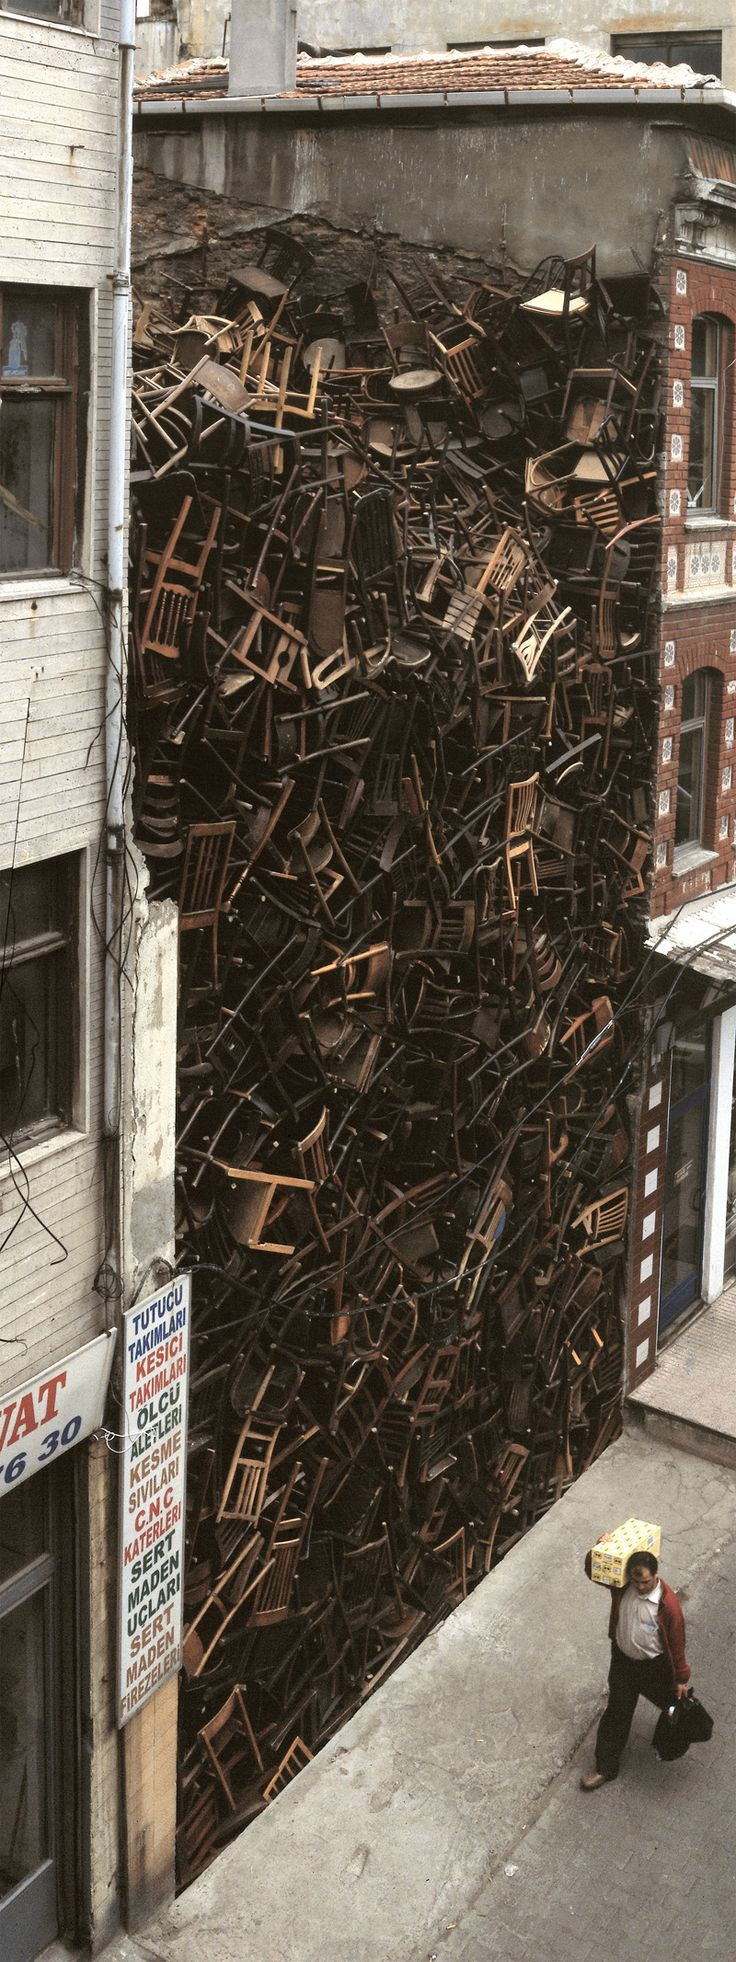 Doris Salcedo. 1,550 wooden chairs piled high between two buildings in central Istanbul. breathless